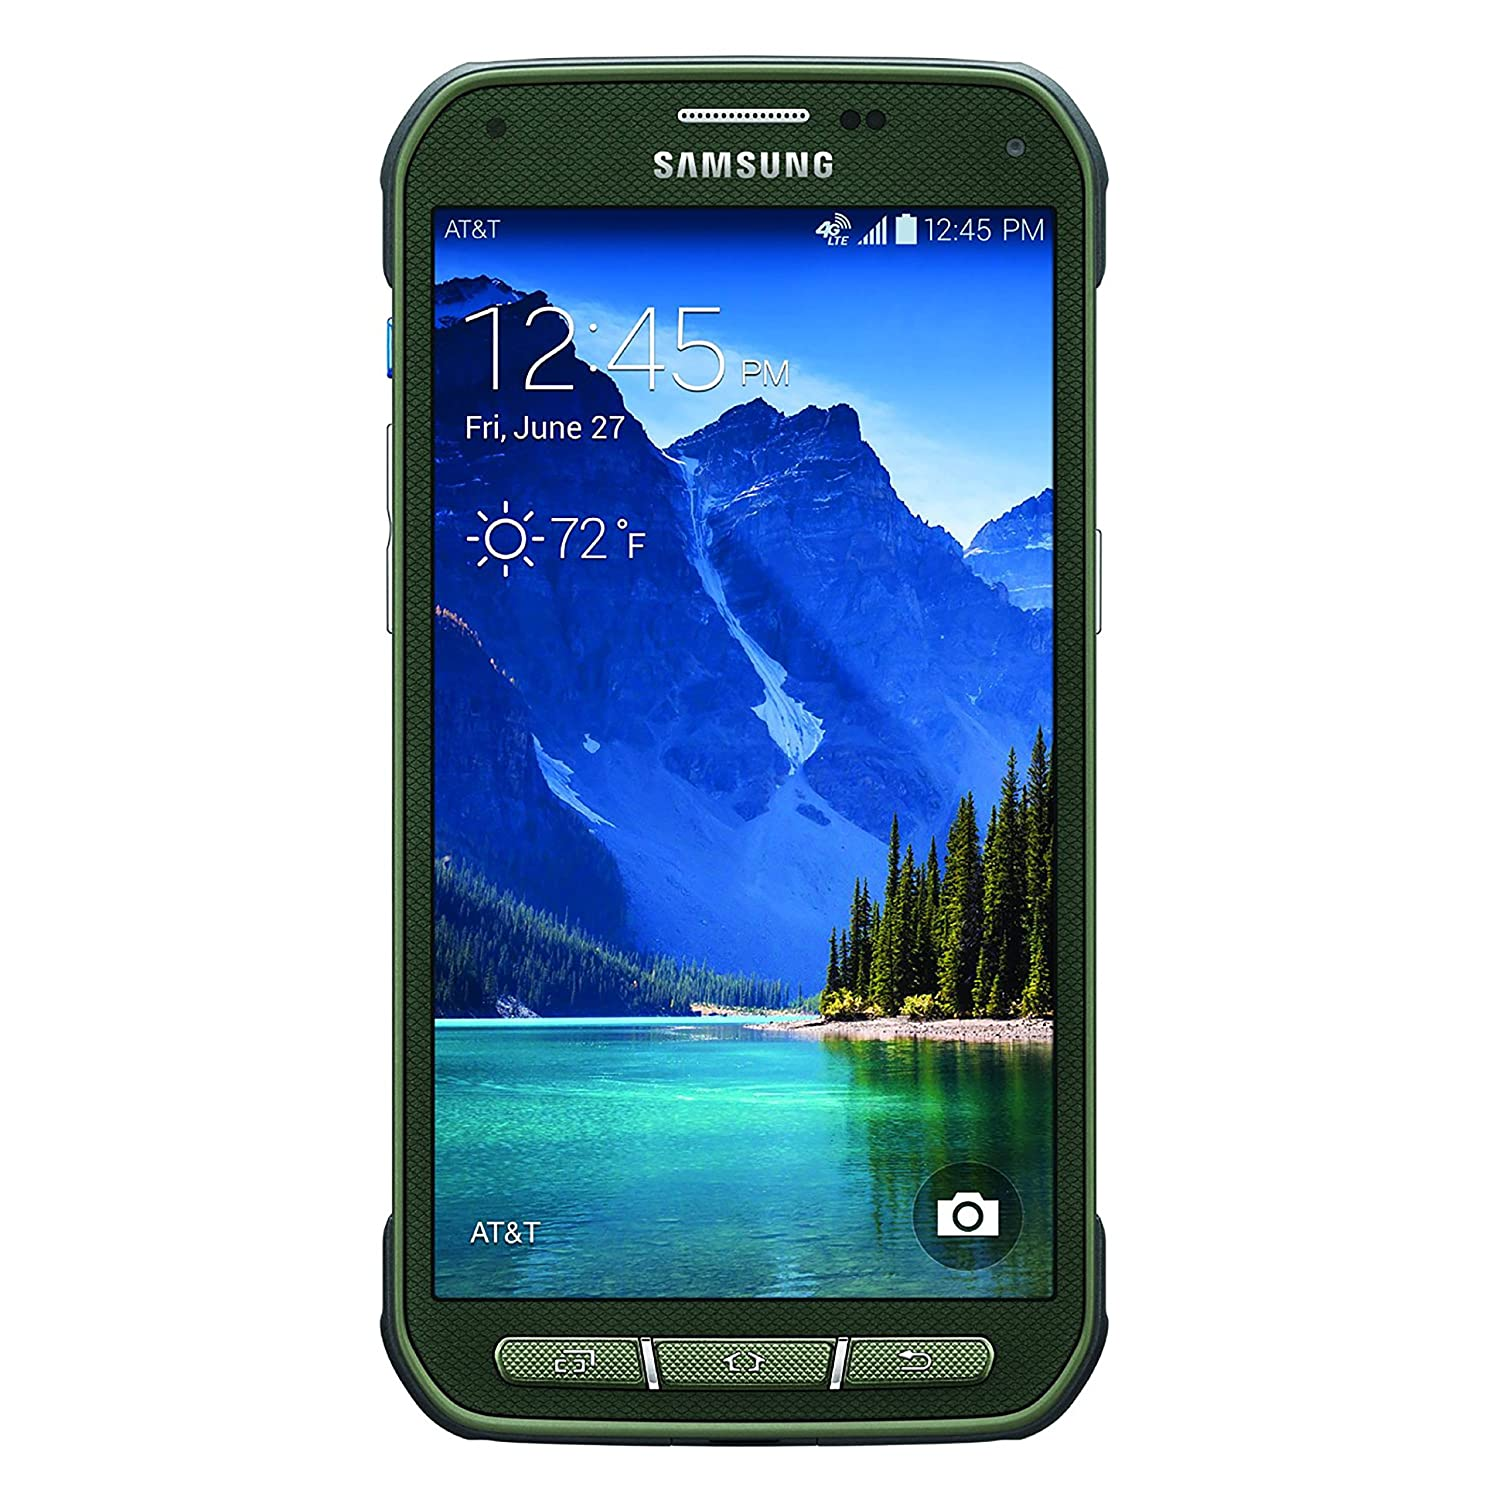 Samsung Galaxy S5 Active, Camo Green 16GB (AT&T)